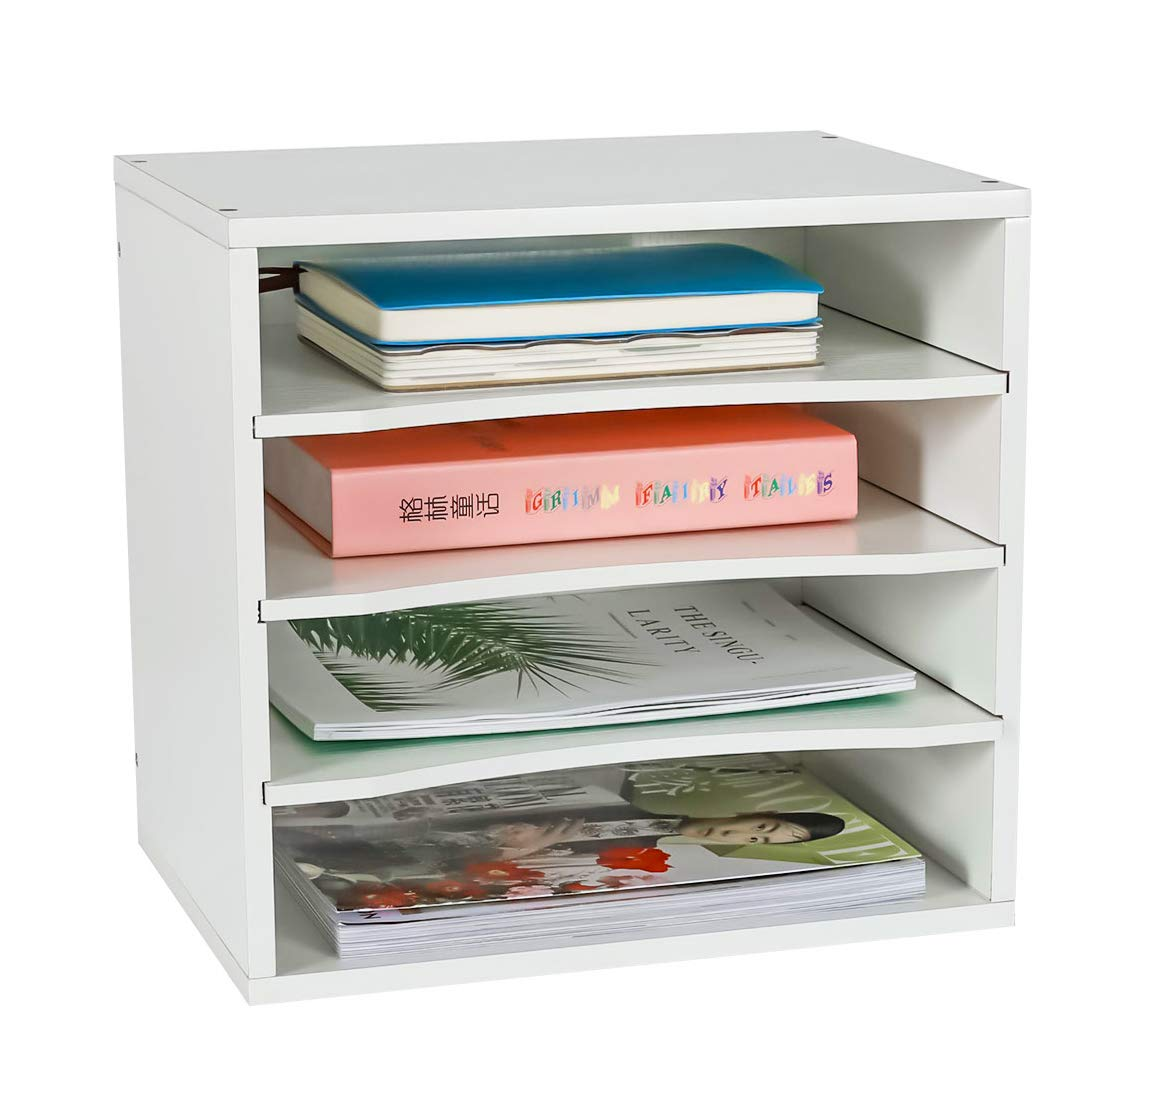 PAG Office Supplies Desk Organizer Wood File Mail Sorter with 3 Adjustable Drawer Boards,White